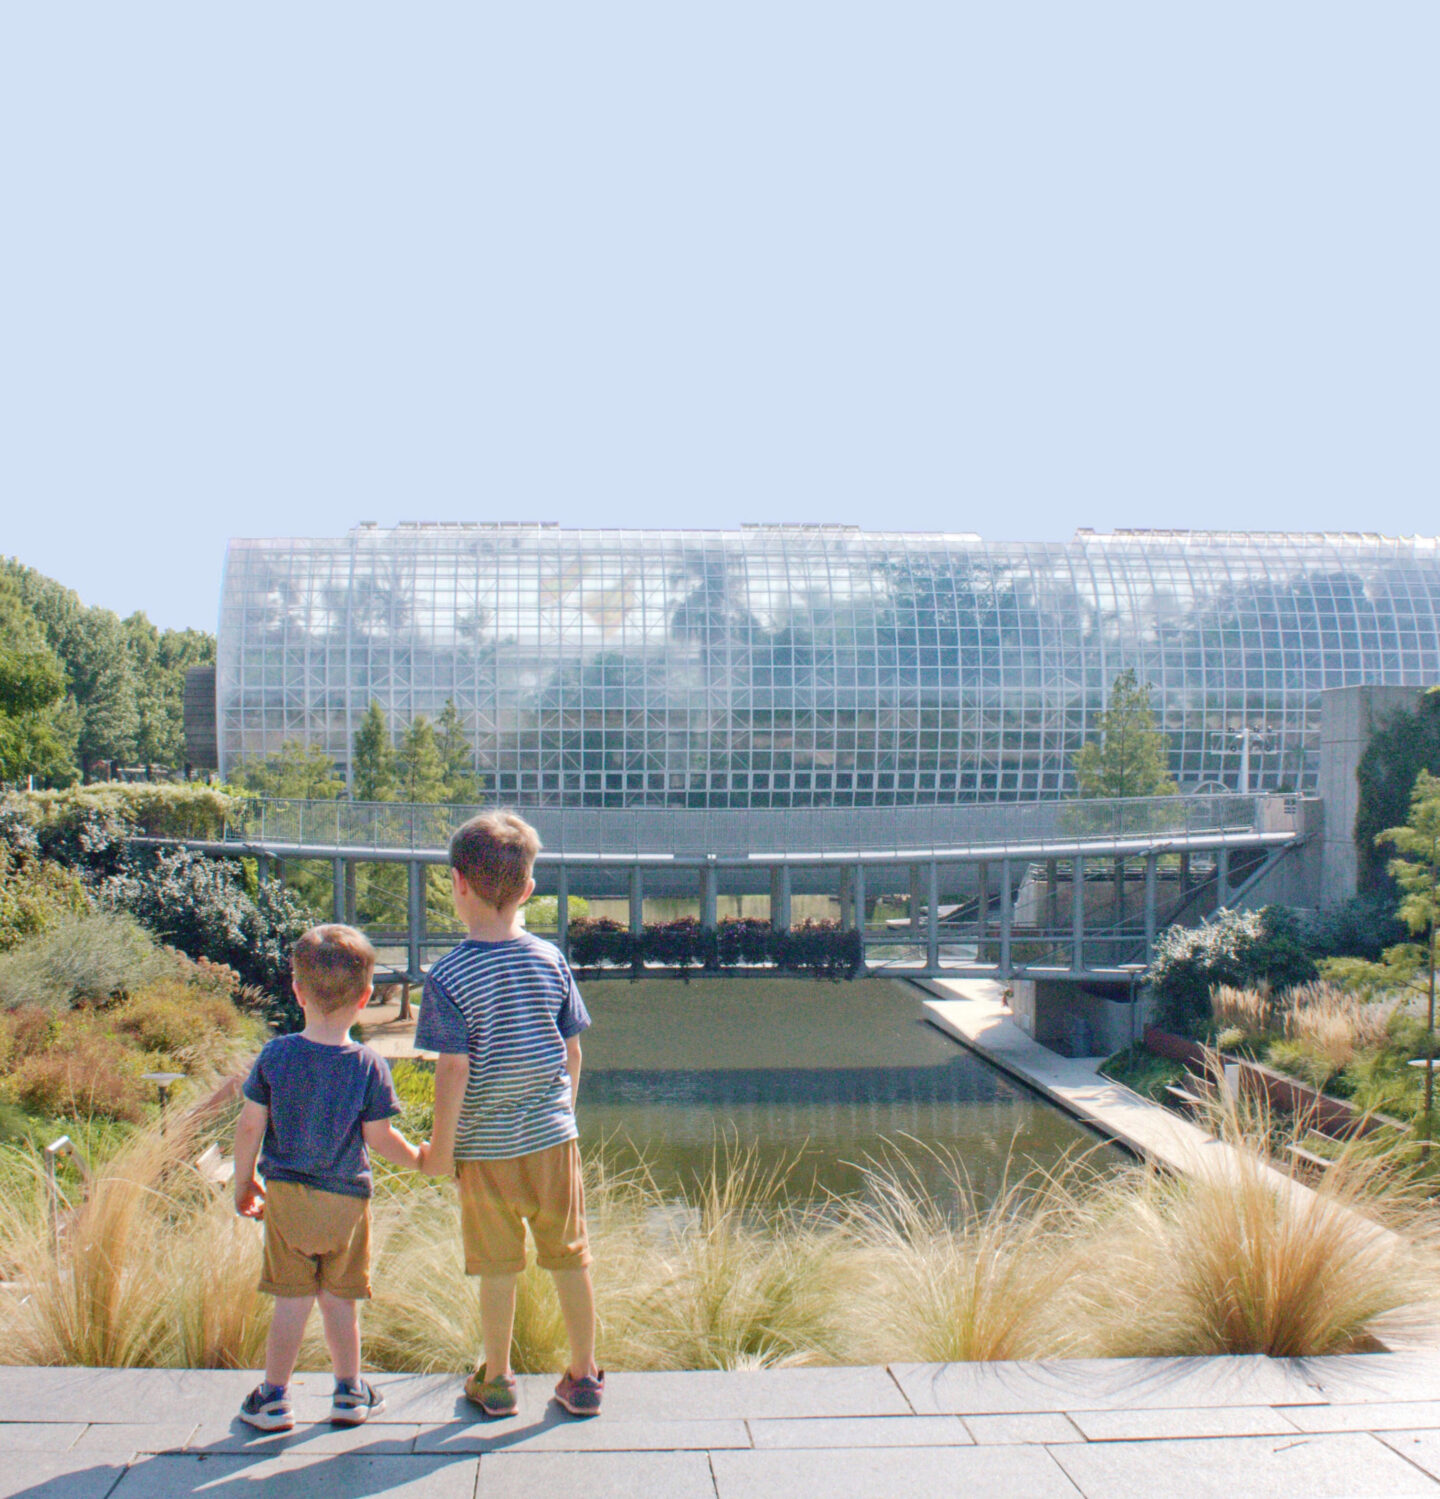 Two boys in the Myriad Gardens in Oklahoma City